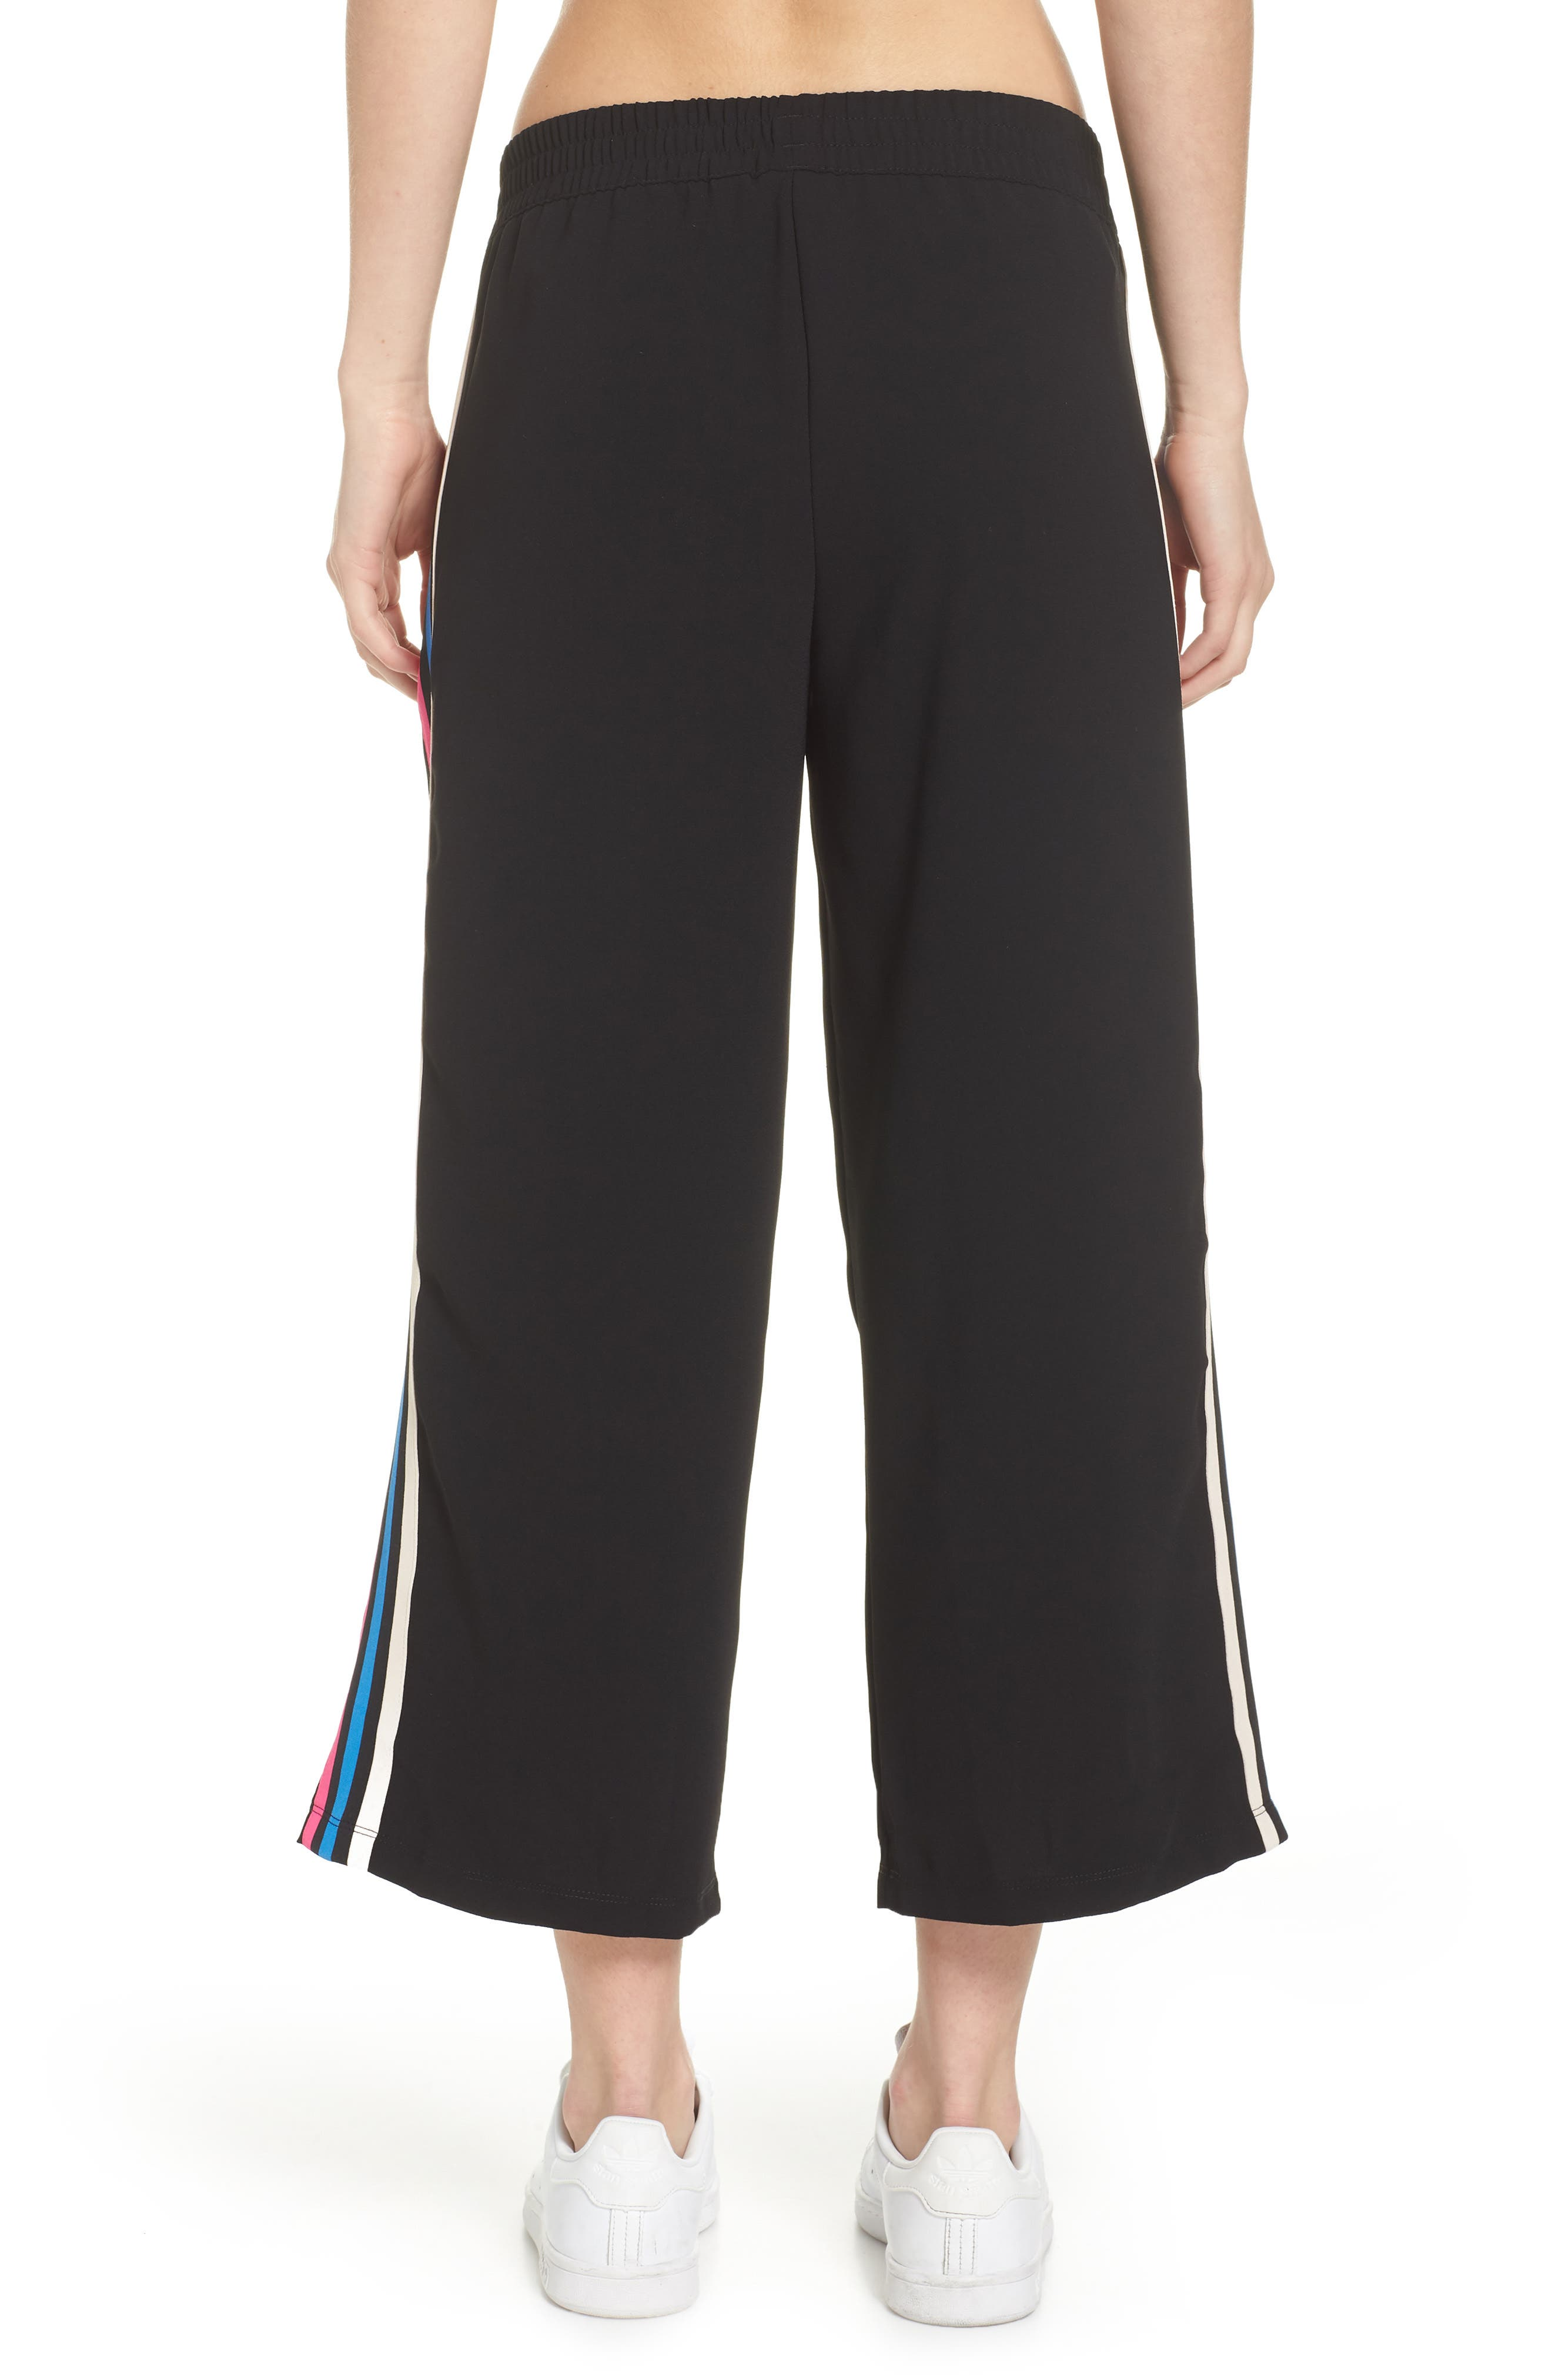 adidas Crop Track Pants,                             Alternate thumbnail 2, color,                             001